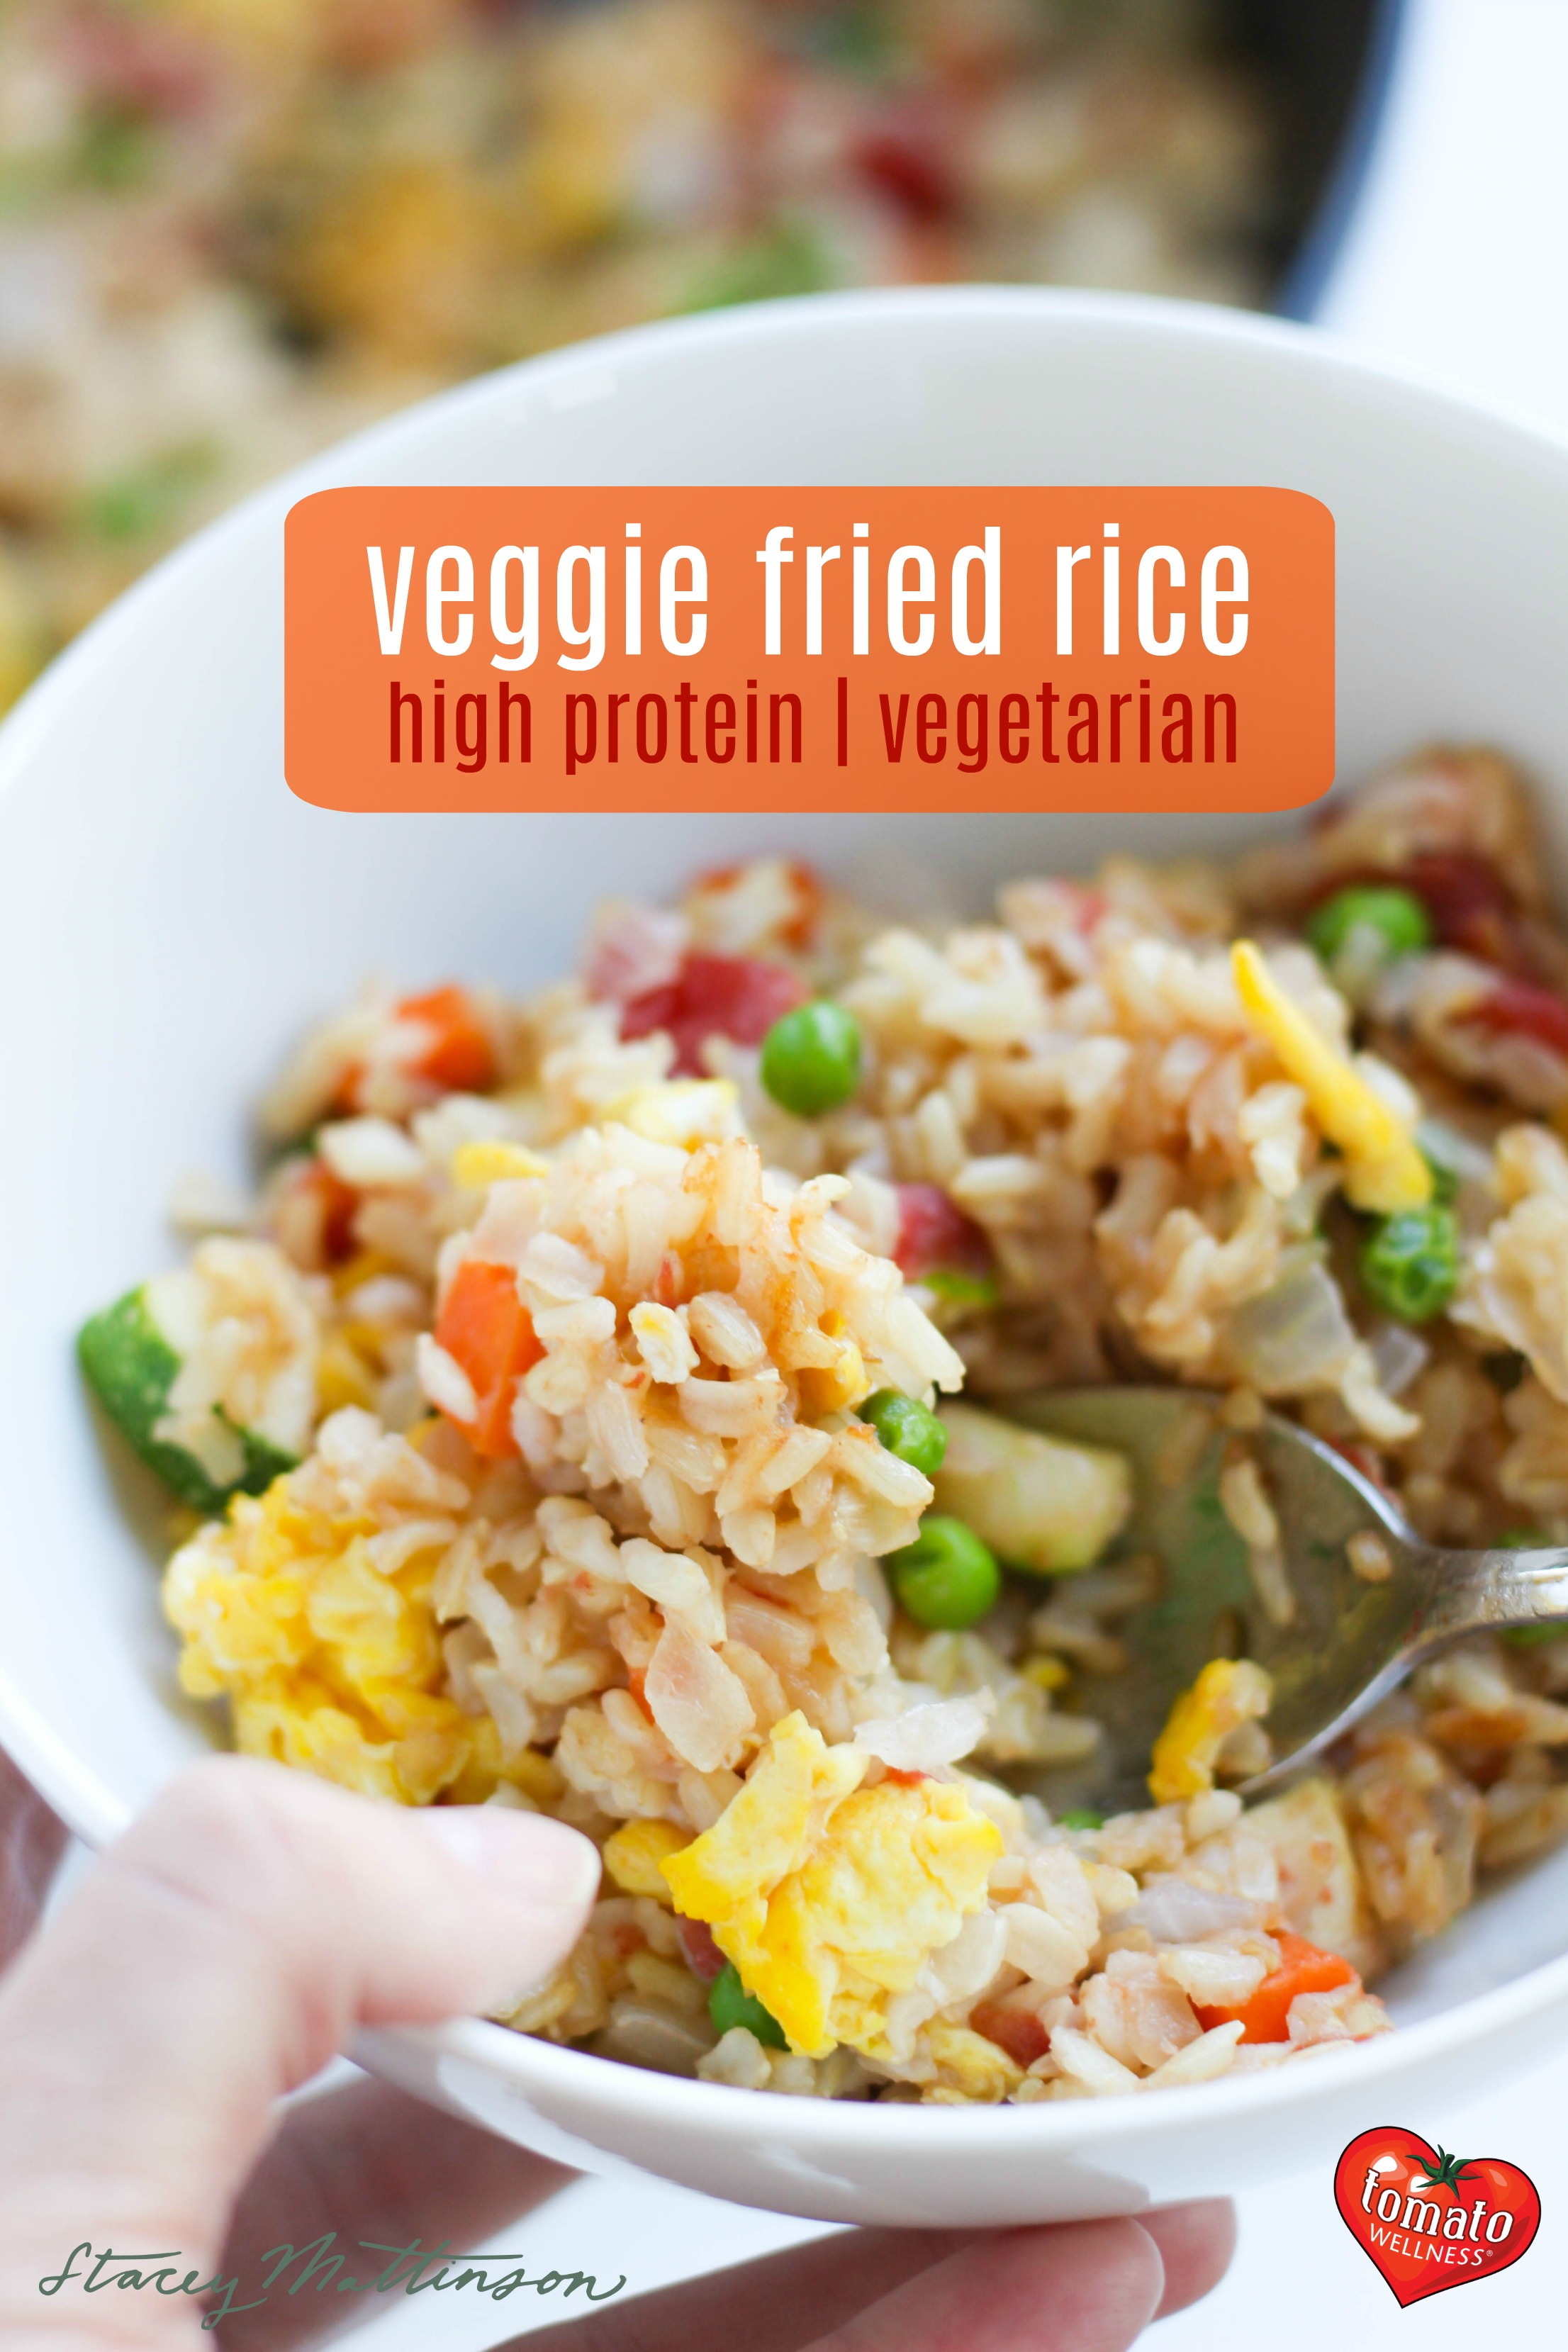 Try this high protein veggie fried rice with tofu and tons of veggies for a throw-together, one pan meal! | Veggie Fried Rice by Stacey Mattinson Nutrition